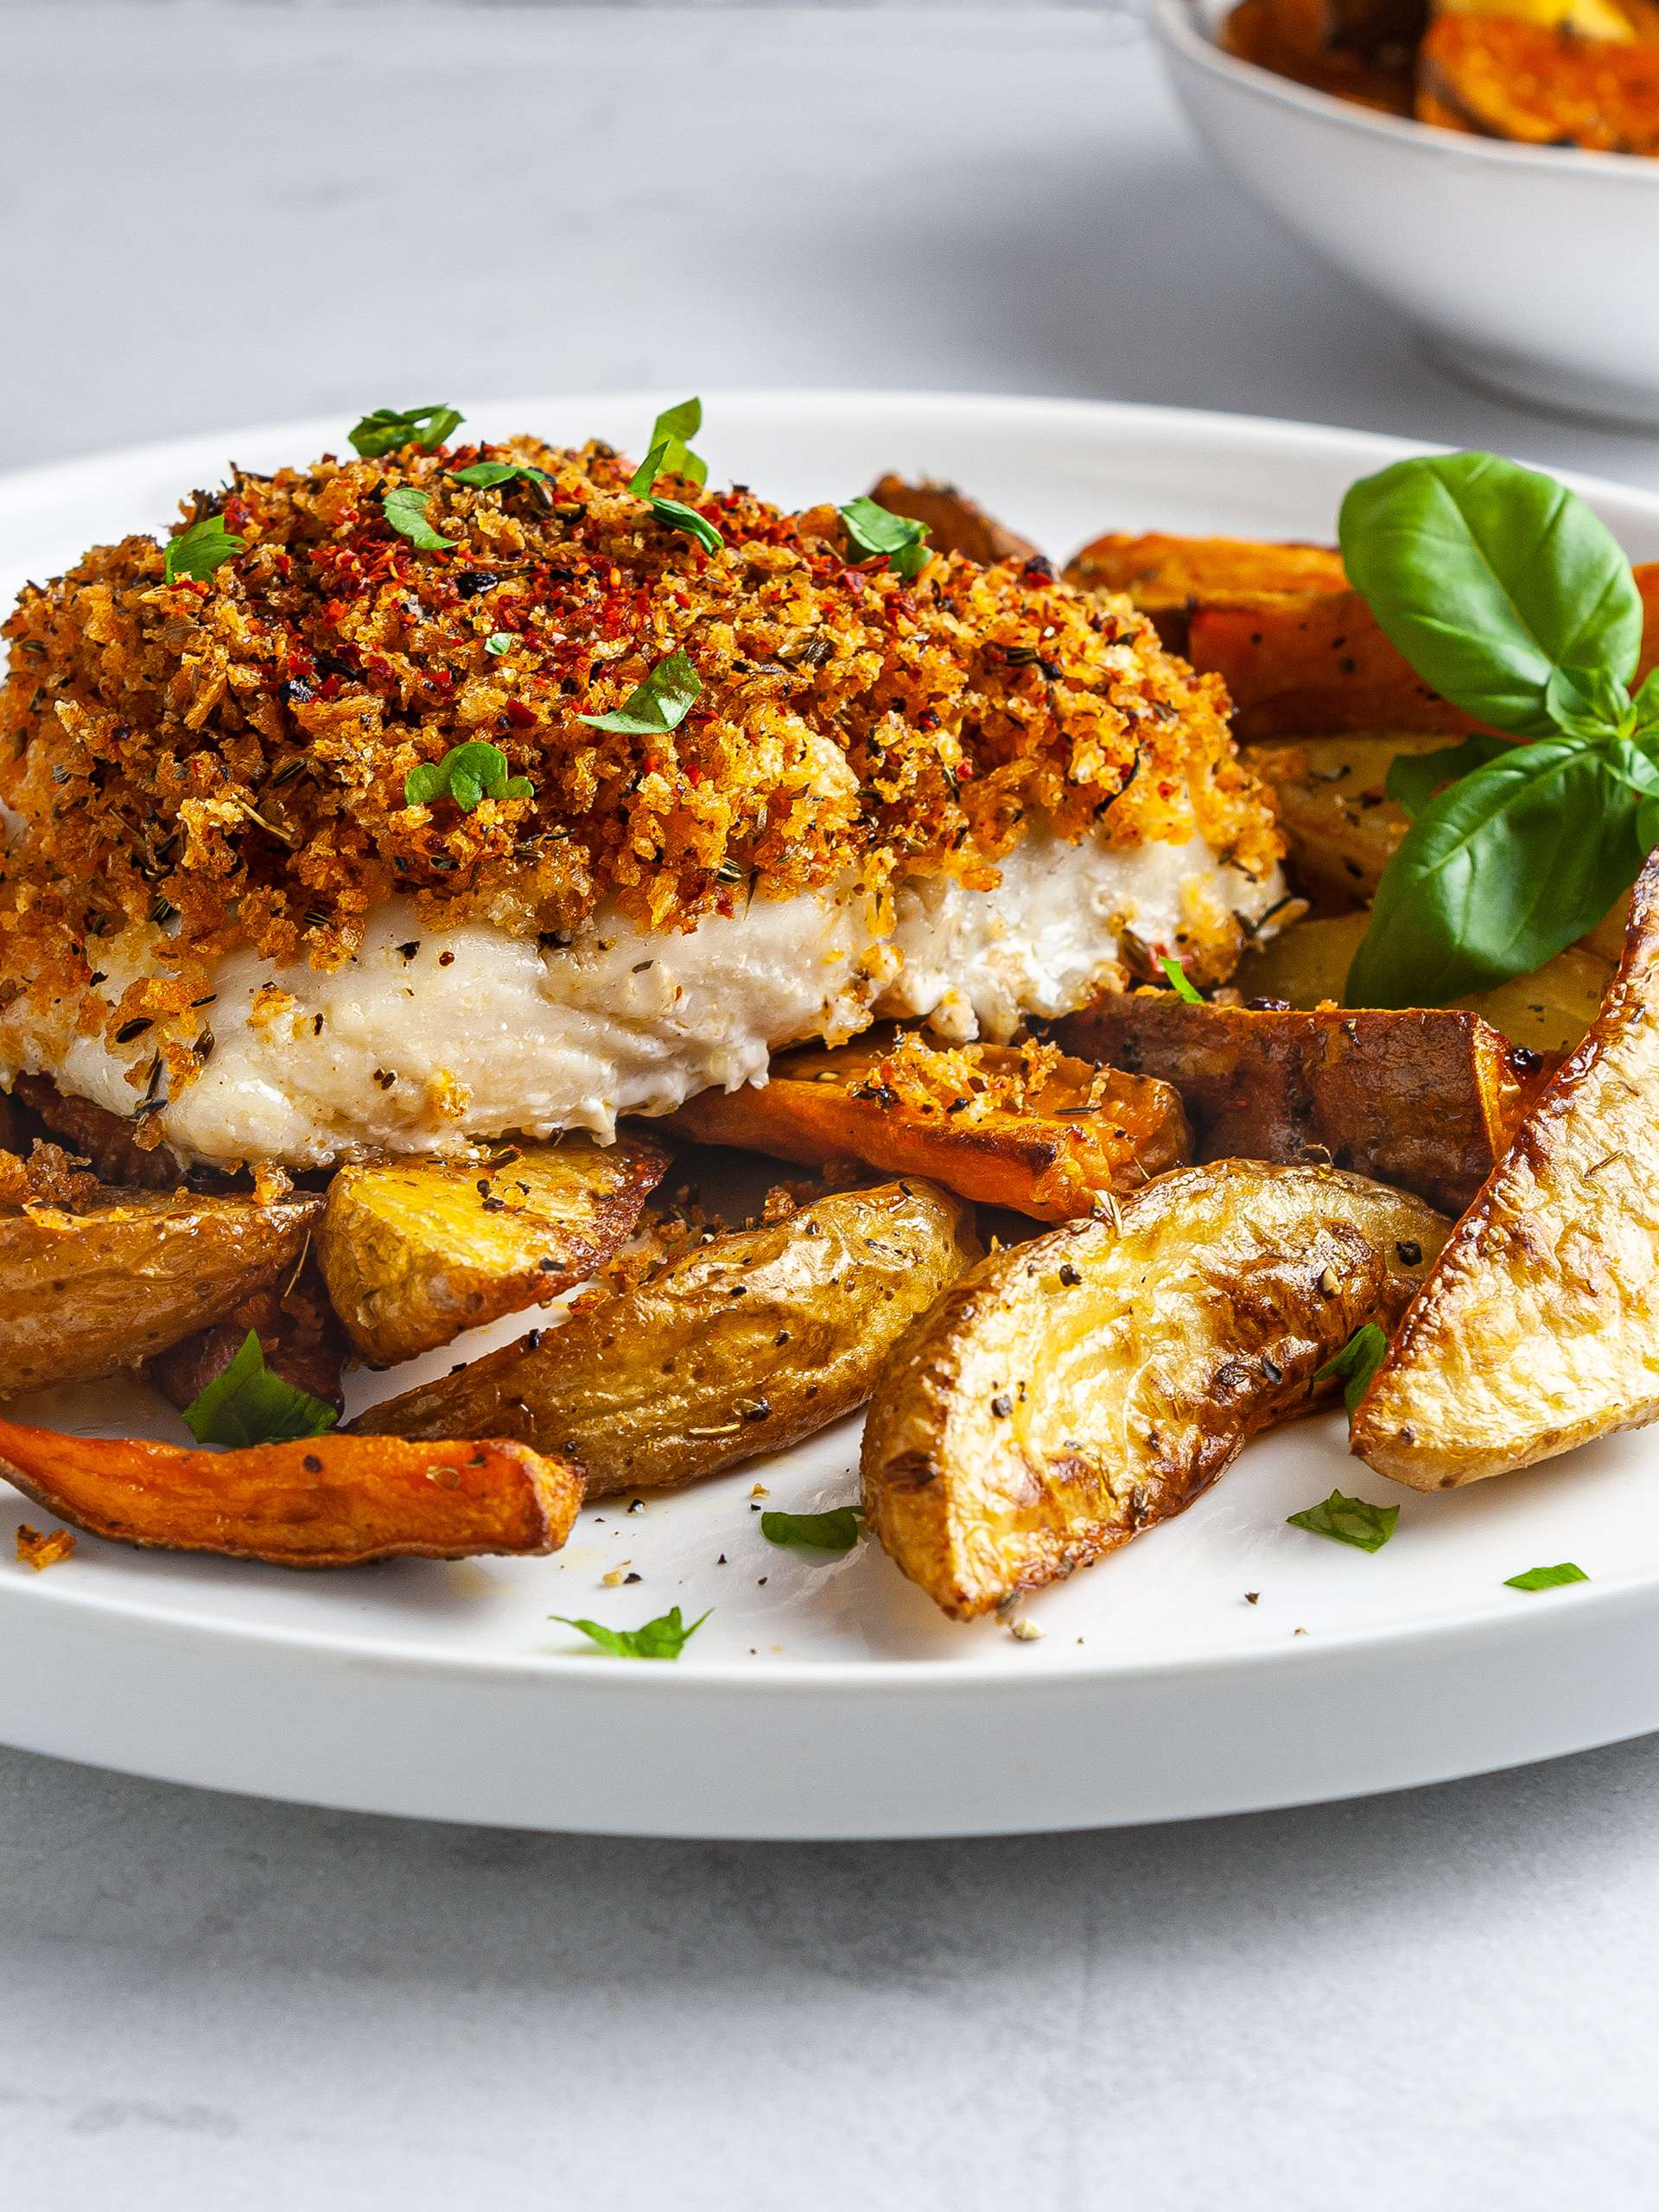 Oven-Baked Hake in Spicy Breadcrumbs